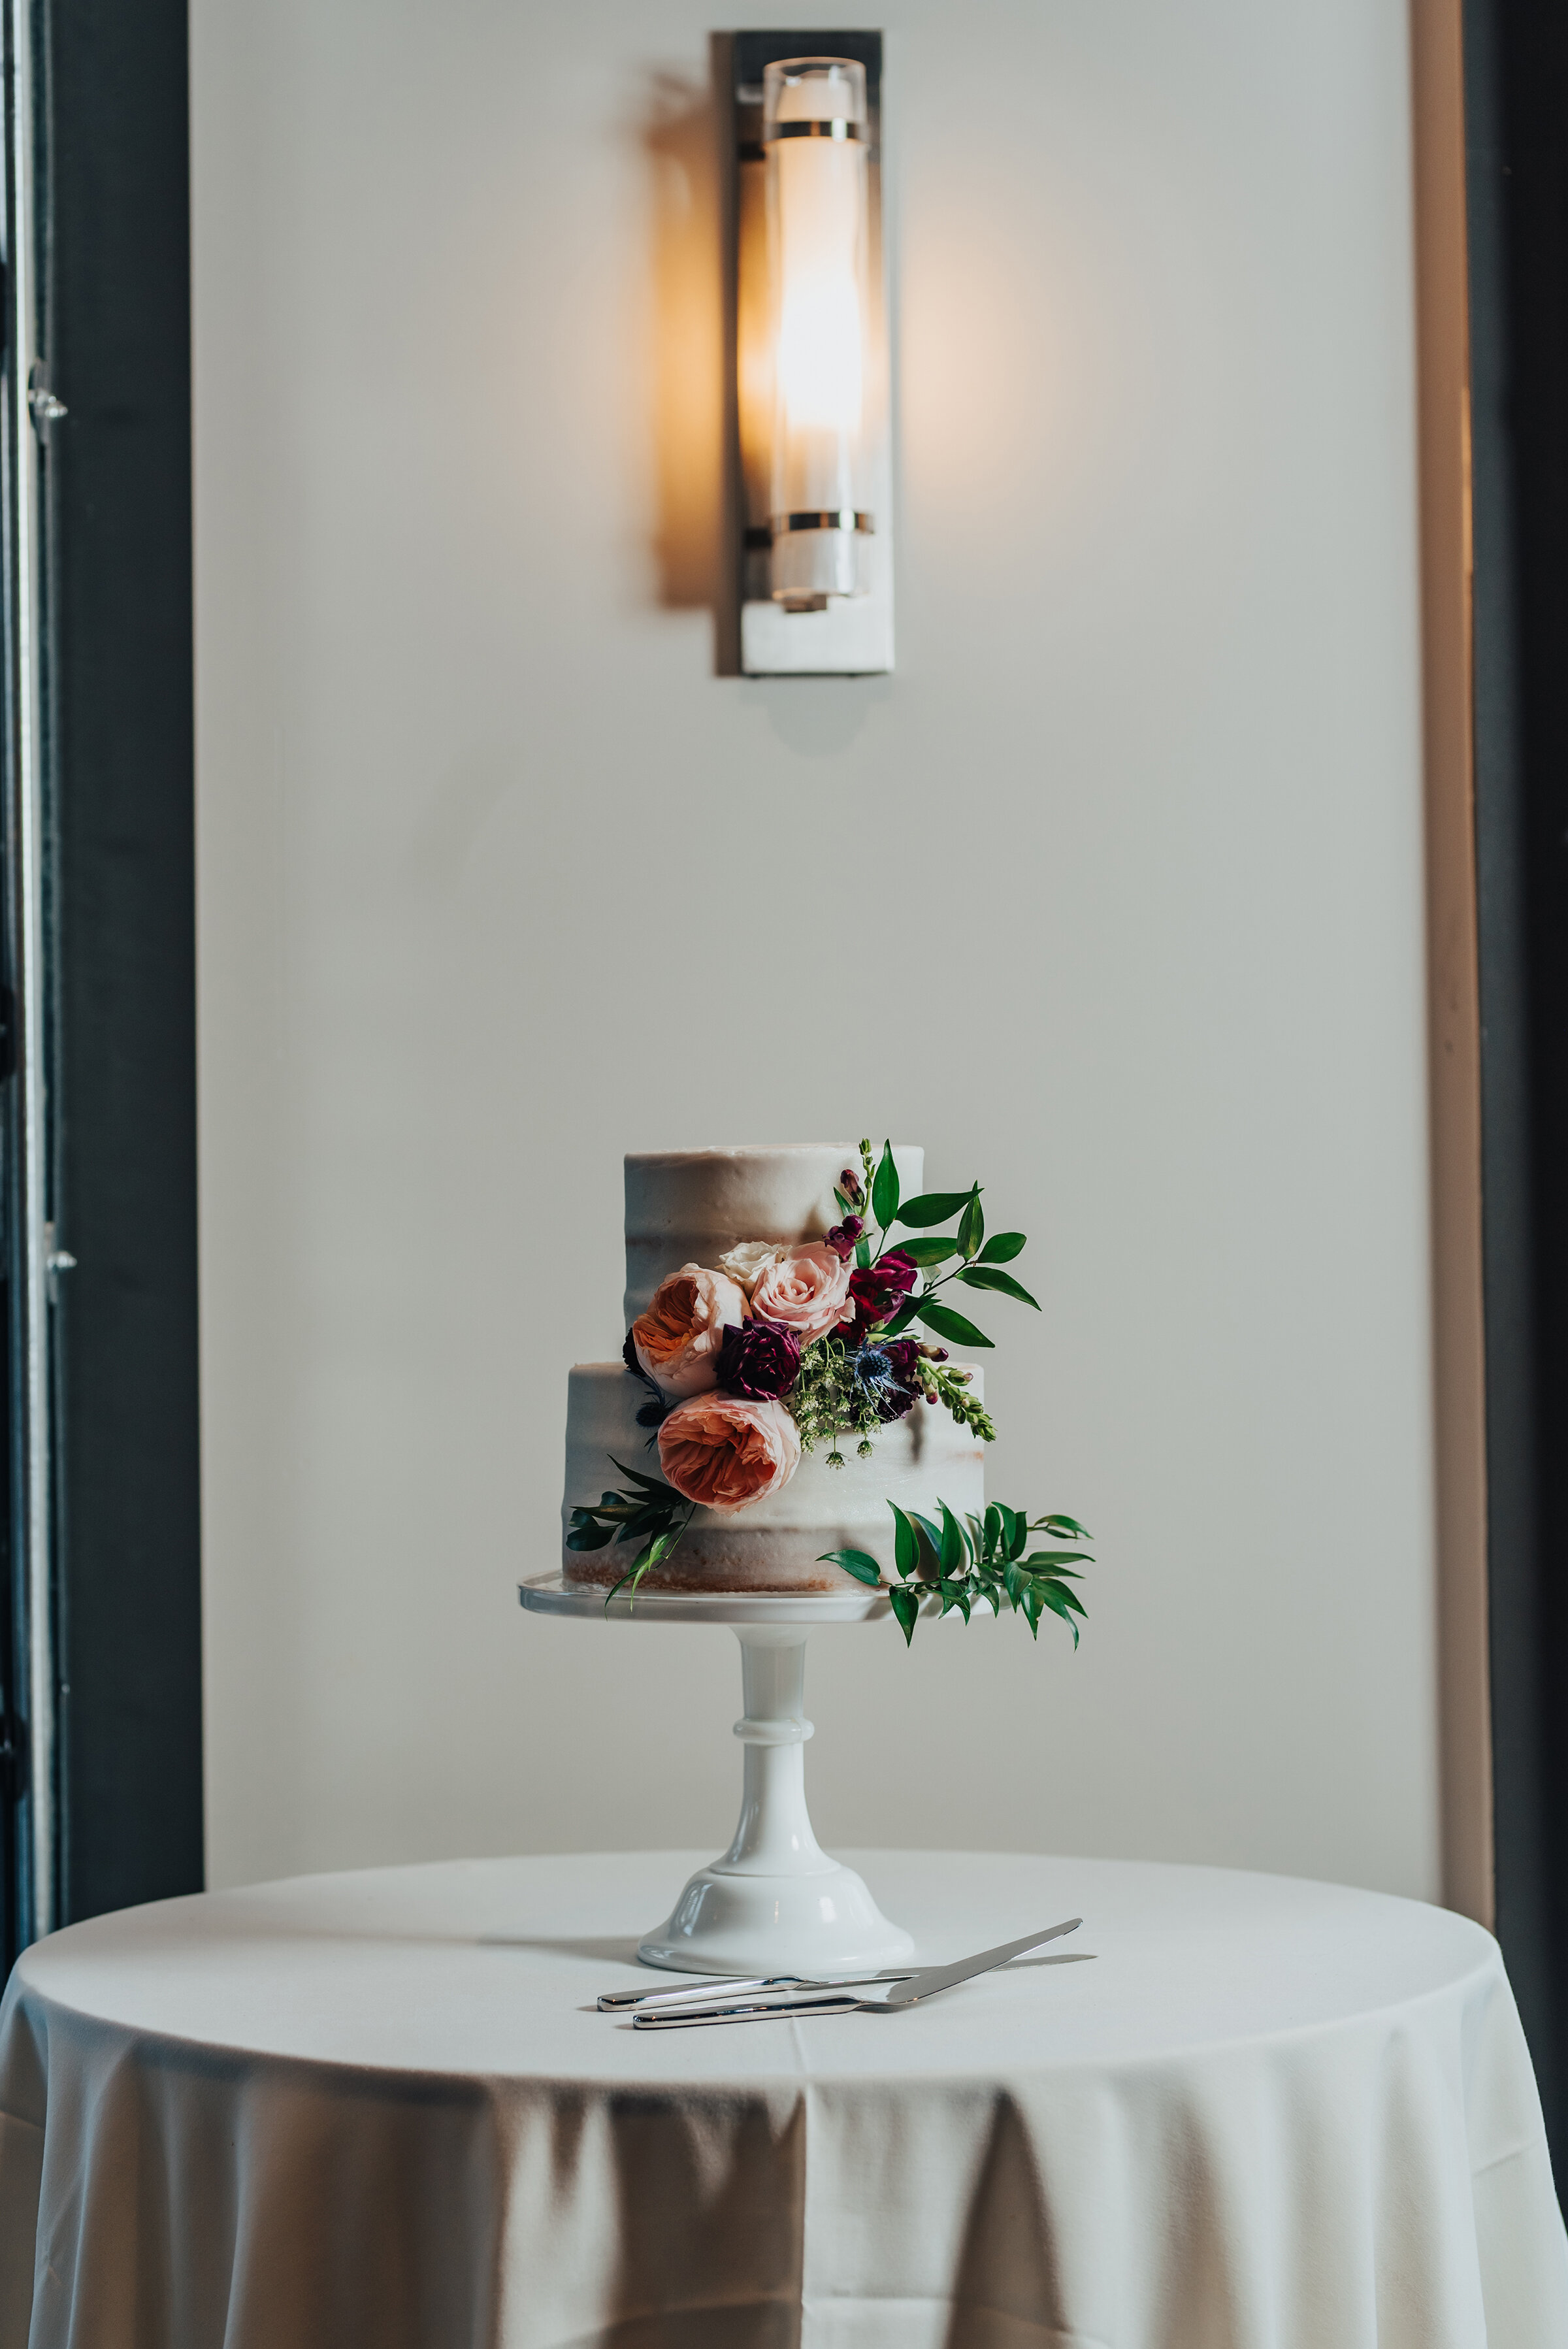 Beautiful floral and nude wedding cake shot in Logan, Utah shot by Kristi Alyse Photography. Vanilla nude cake floral arrangement wedding cake quality photos Kristi Alyse cake traditions simple details bride and grooms cake #weddinginspo #loganutah #brideandgroom #utahbride #utahweddingphotographer #meaningfulmoment #weddingphotography #northernutahwedding #weddinghairstyles #weddingday #bridals